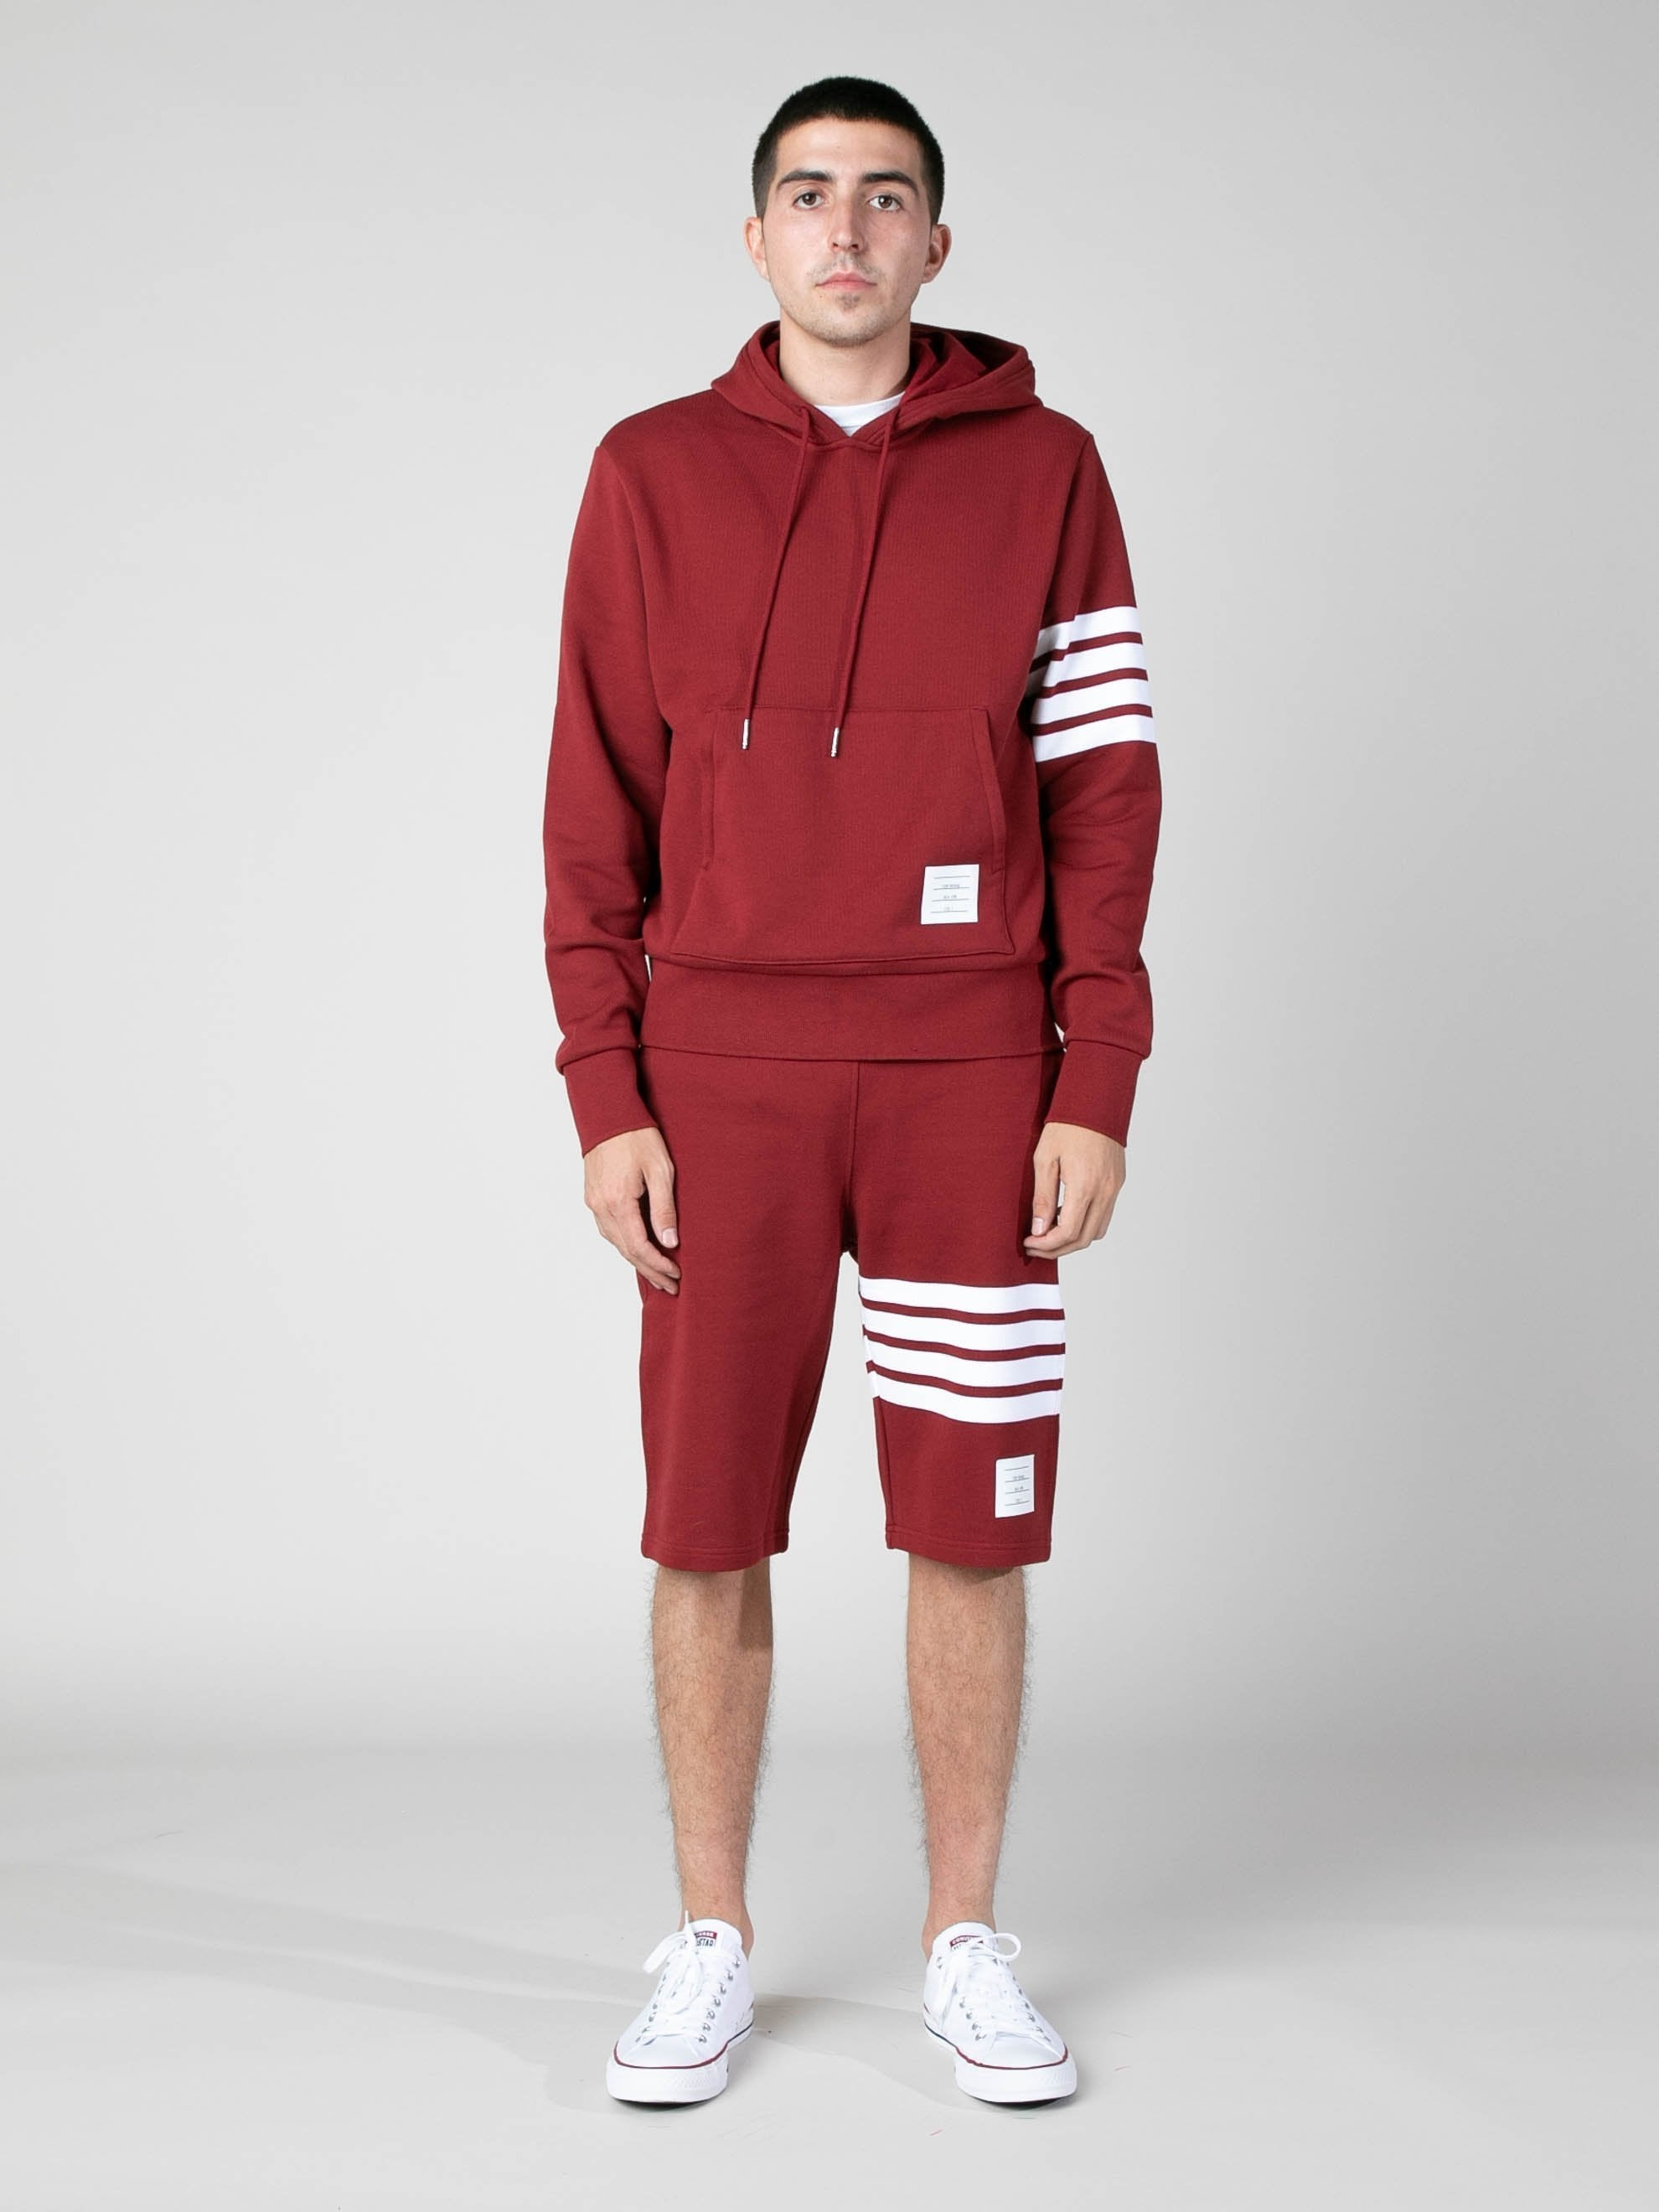 Med Red Hoodie Pullover In Classic Loop Back w/ Engineered 4 Bar 3